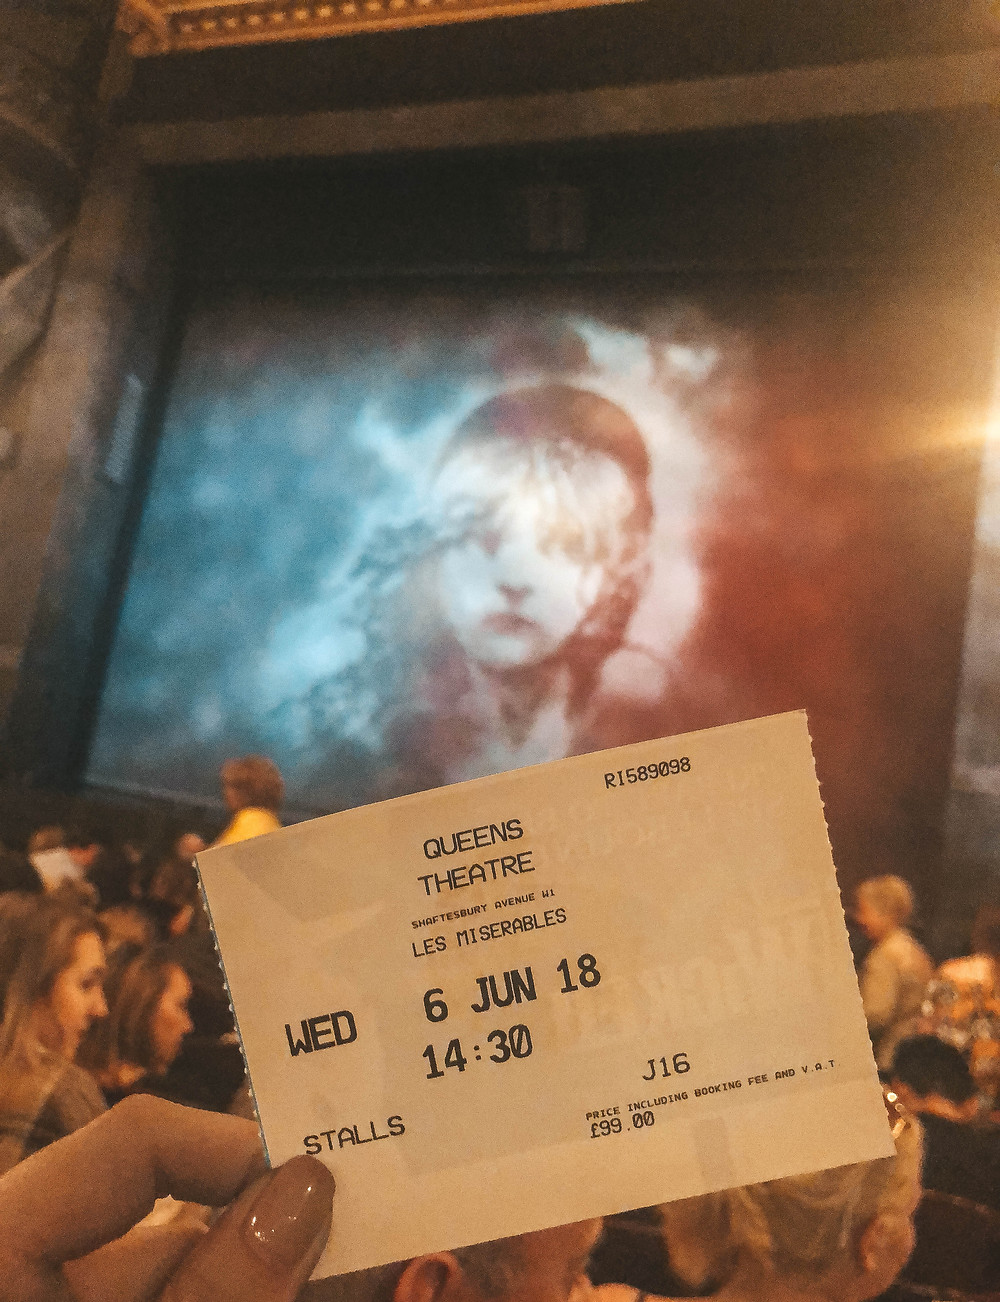 Now the world's longest running musical, and a global stage sensation, Les Misérables sweeps audiences through an epic tale of passion and destruction.